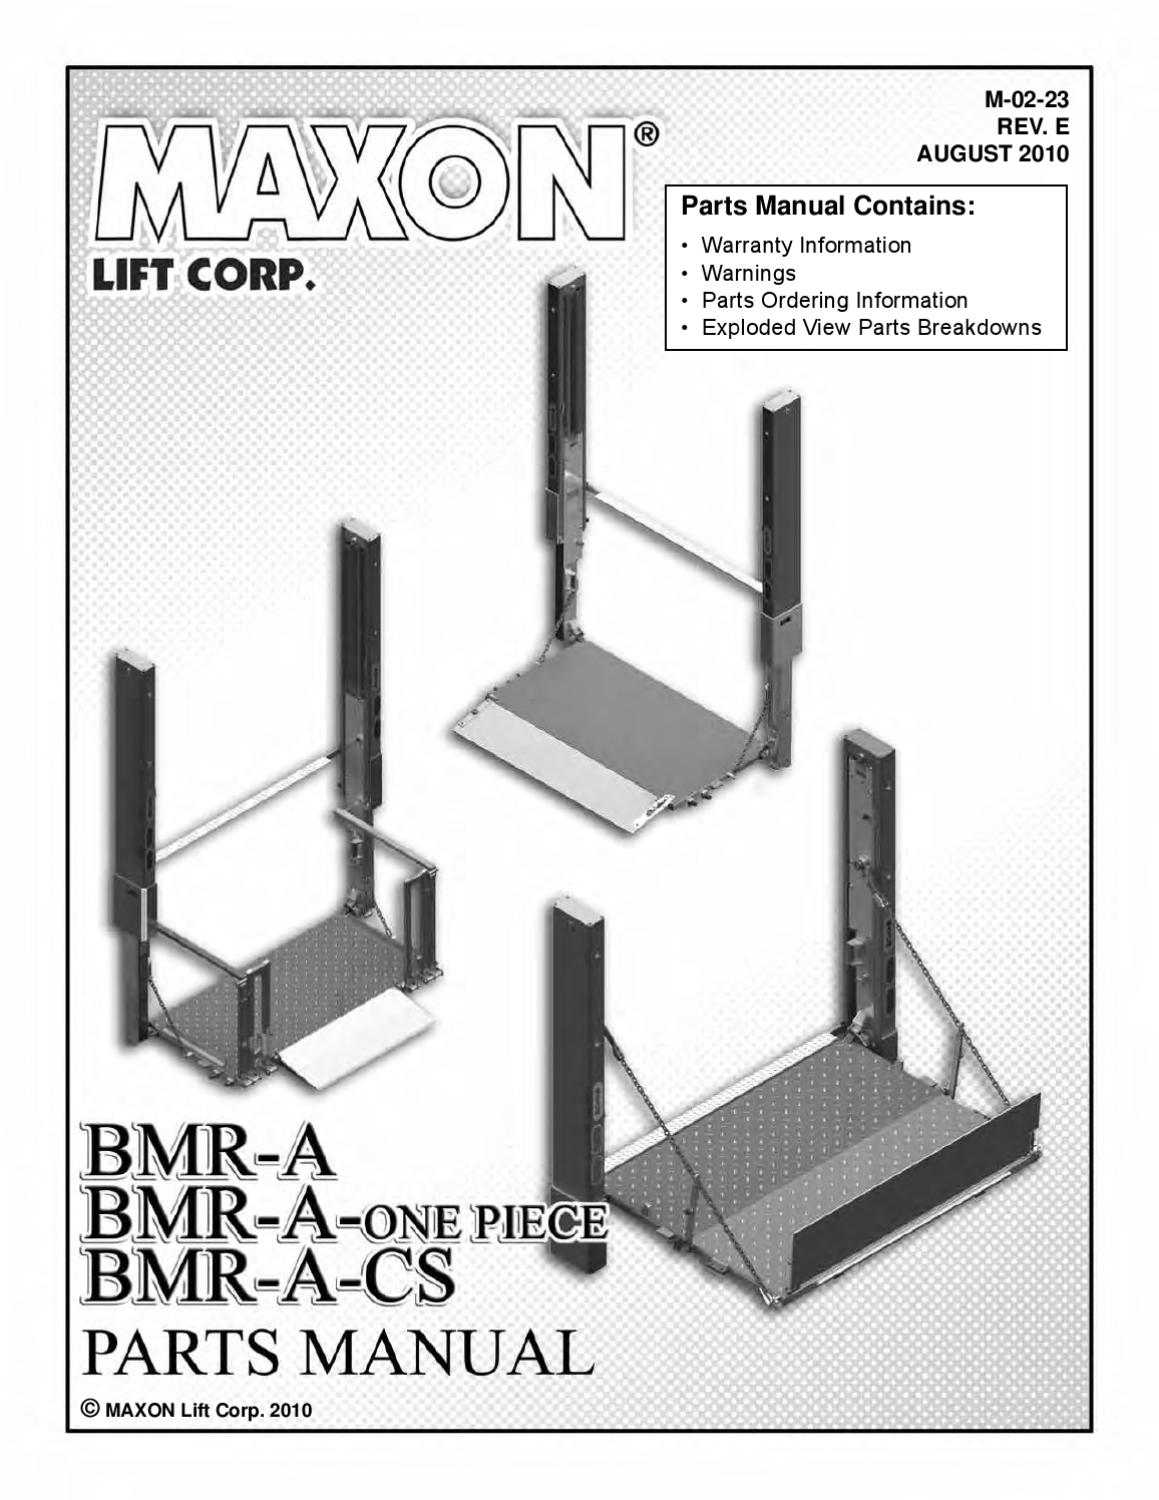 Maxon Lift Gates Wiring Diagrams Also Maxon Lift Gates Wiring Diagrams